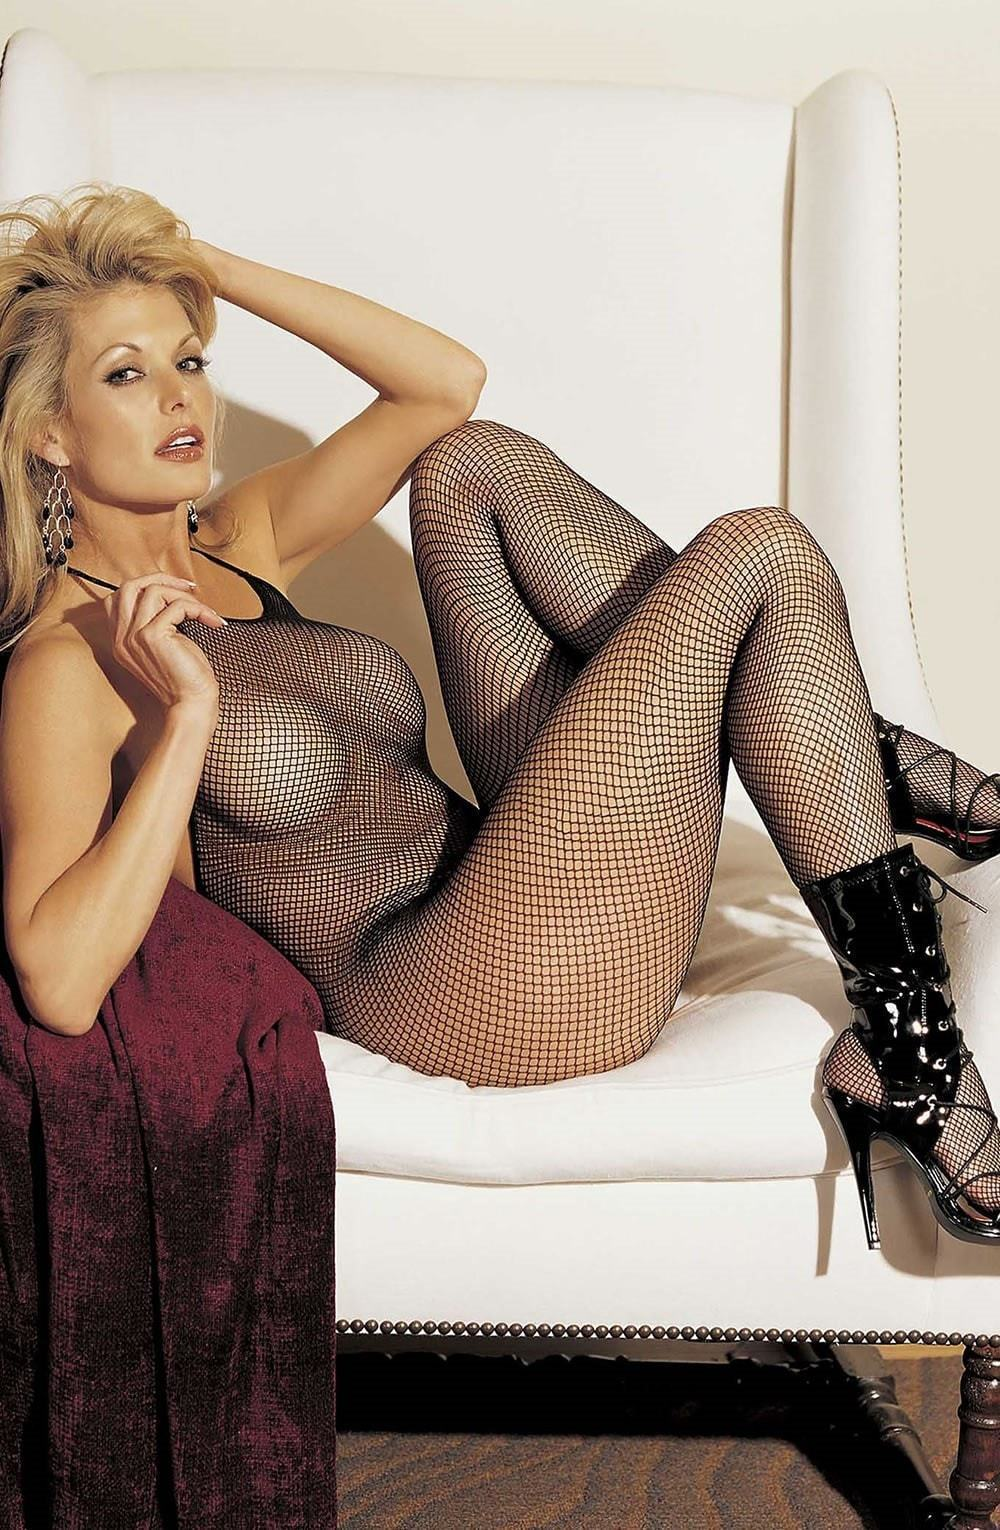 Shirley of Hollywood Shirley of Hollywood Bodystocking One Size UK 8-14 / Black SOH 90025 Hot Halterneck Bodystocking Black